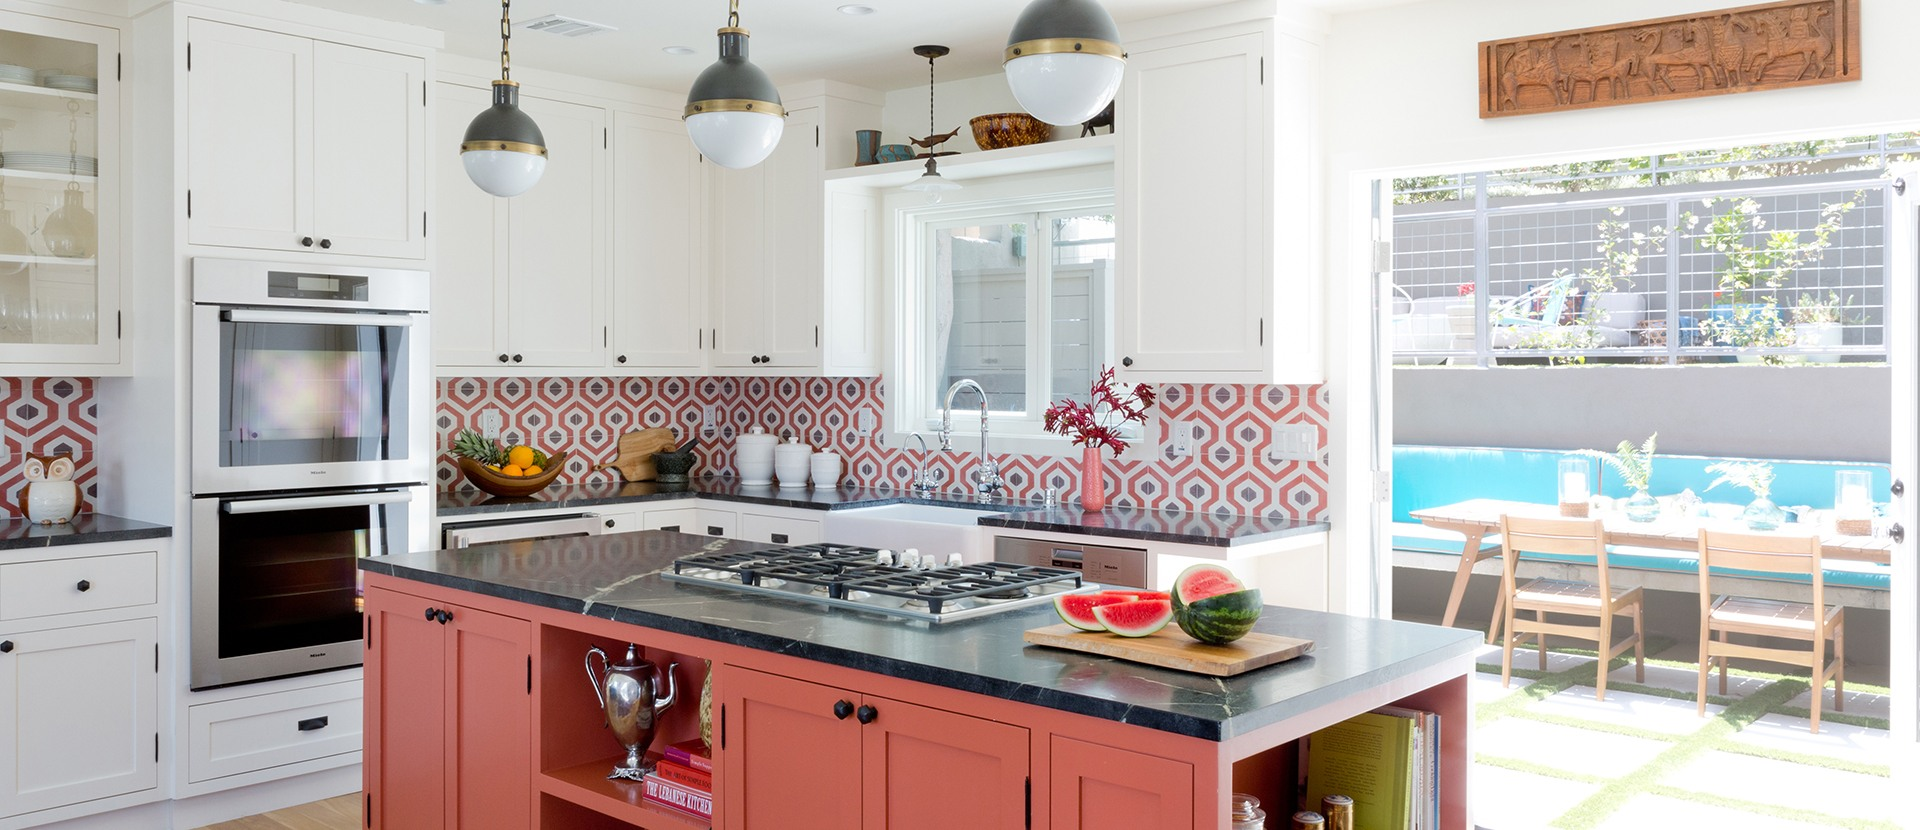 003-design-vidal-silver-lake-addition-los-angeles-kitchen-island-pendant-lighting-cement-tile-backsplash-red-cabinets-double-oven-miele-open-concept